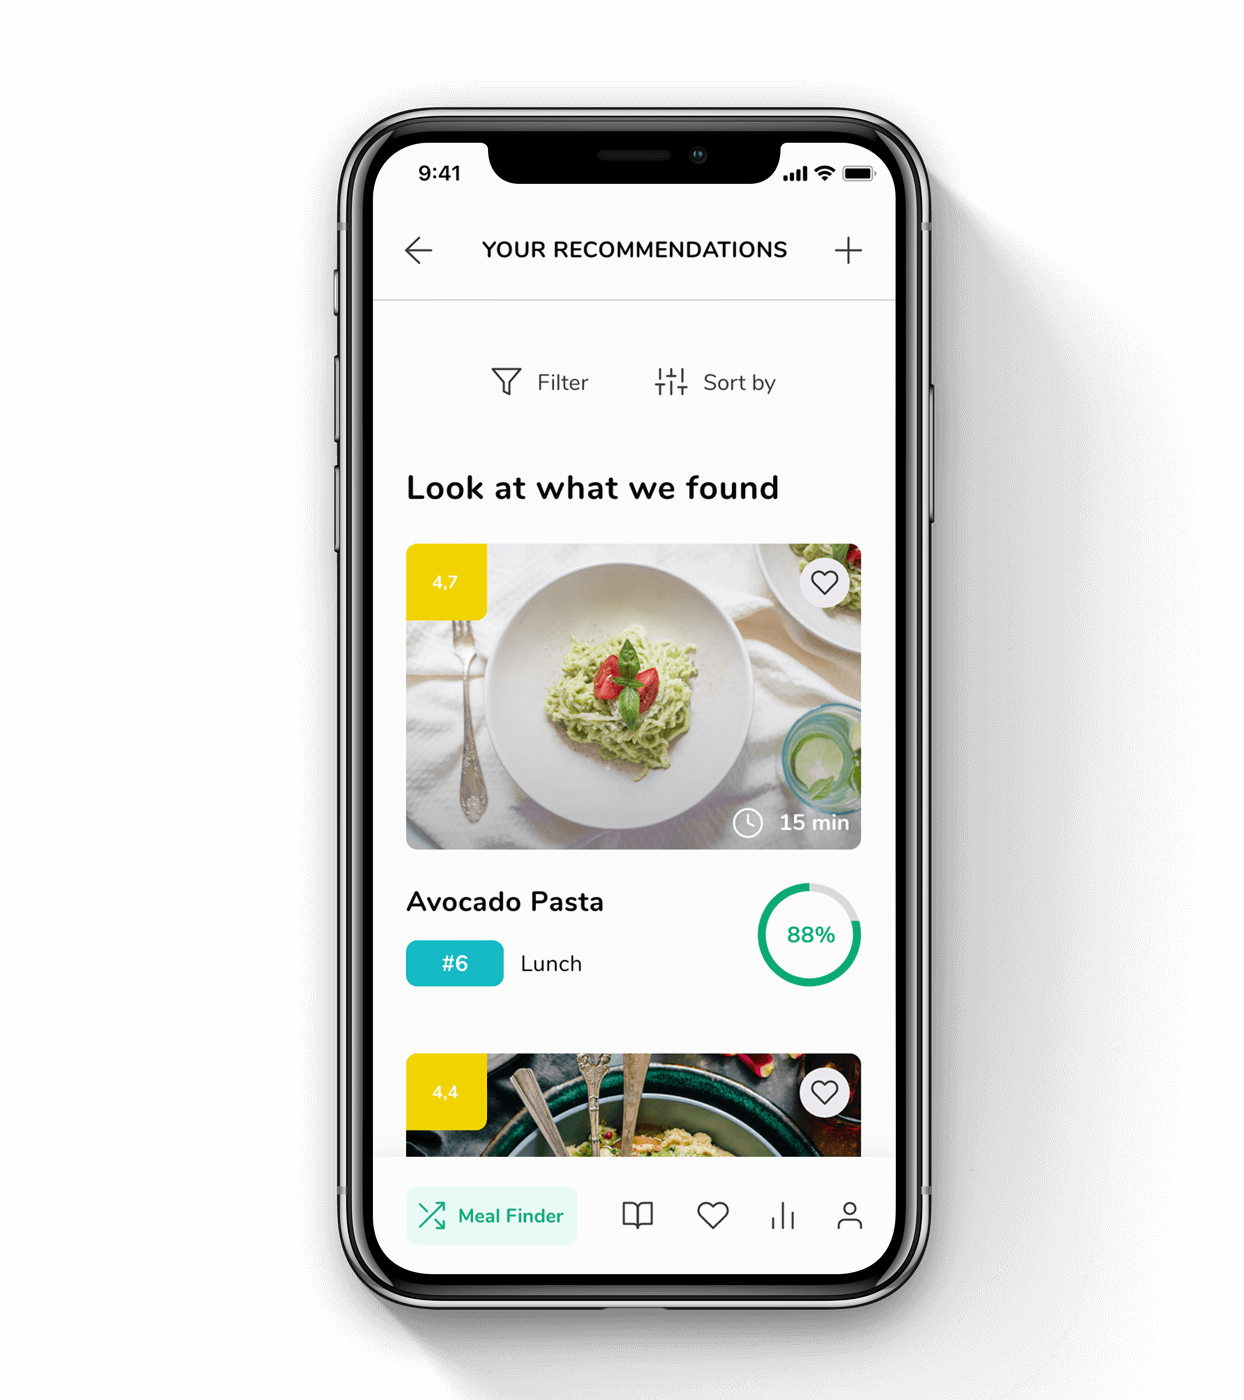 Meal recommendation results screen from WhatMeal app.